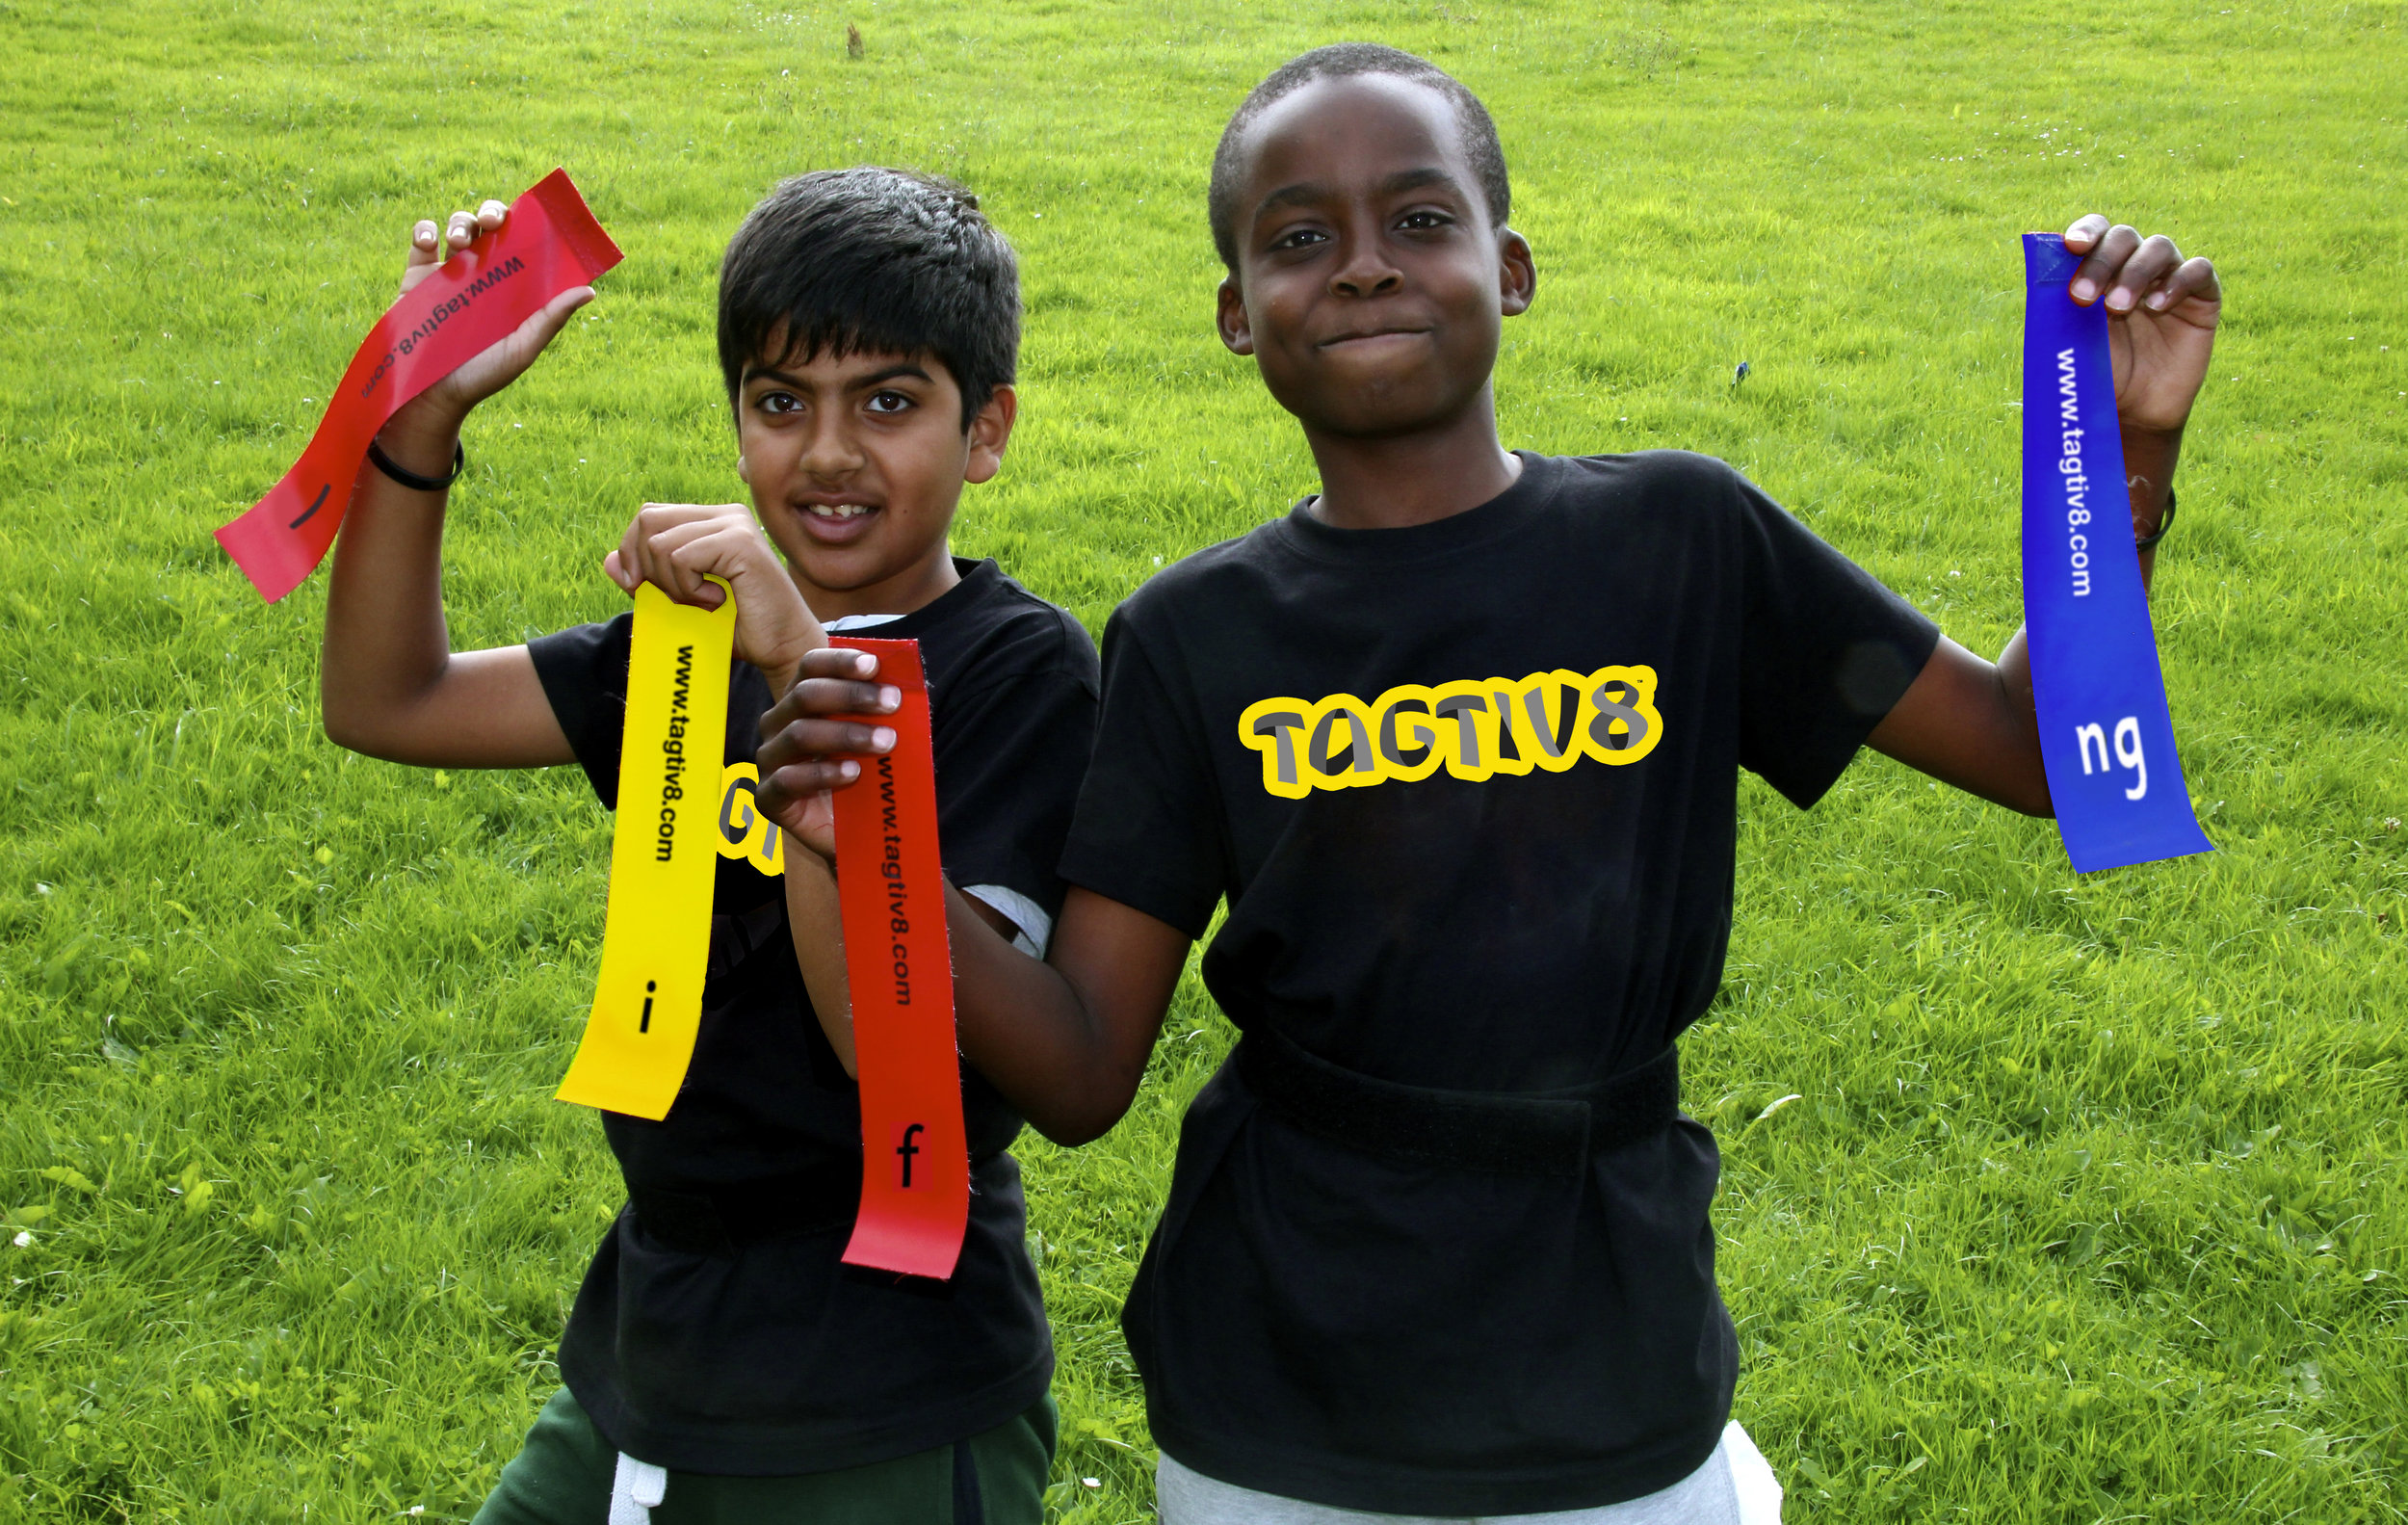 Boys wearing their Tagtiv8 T-Shirts